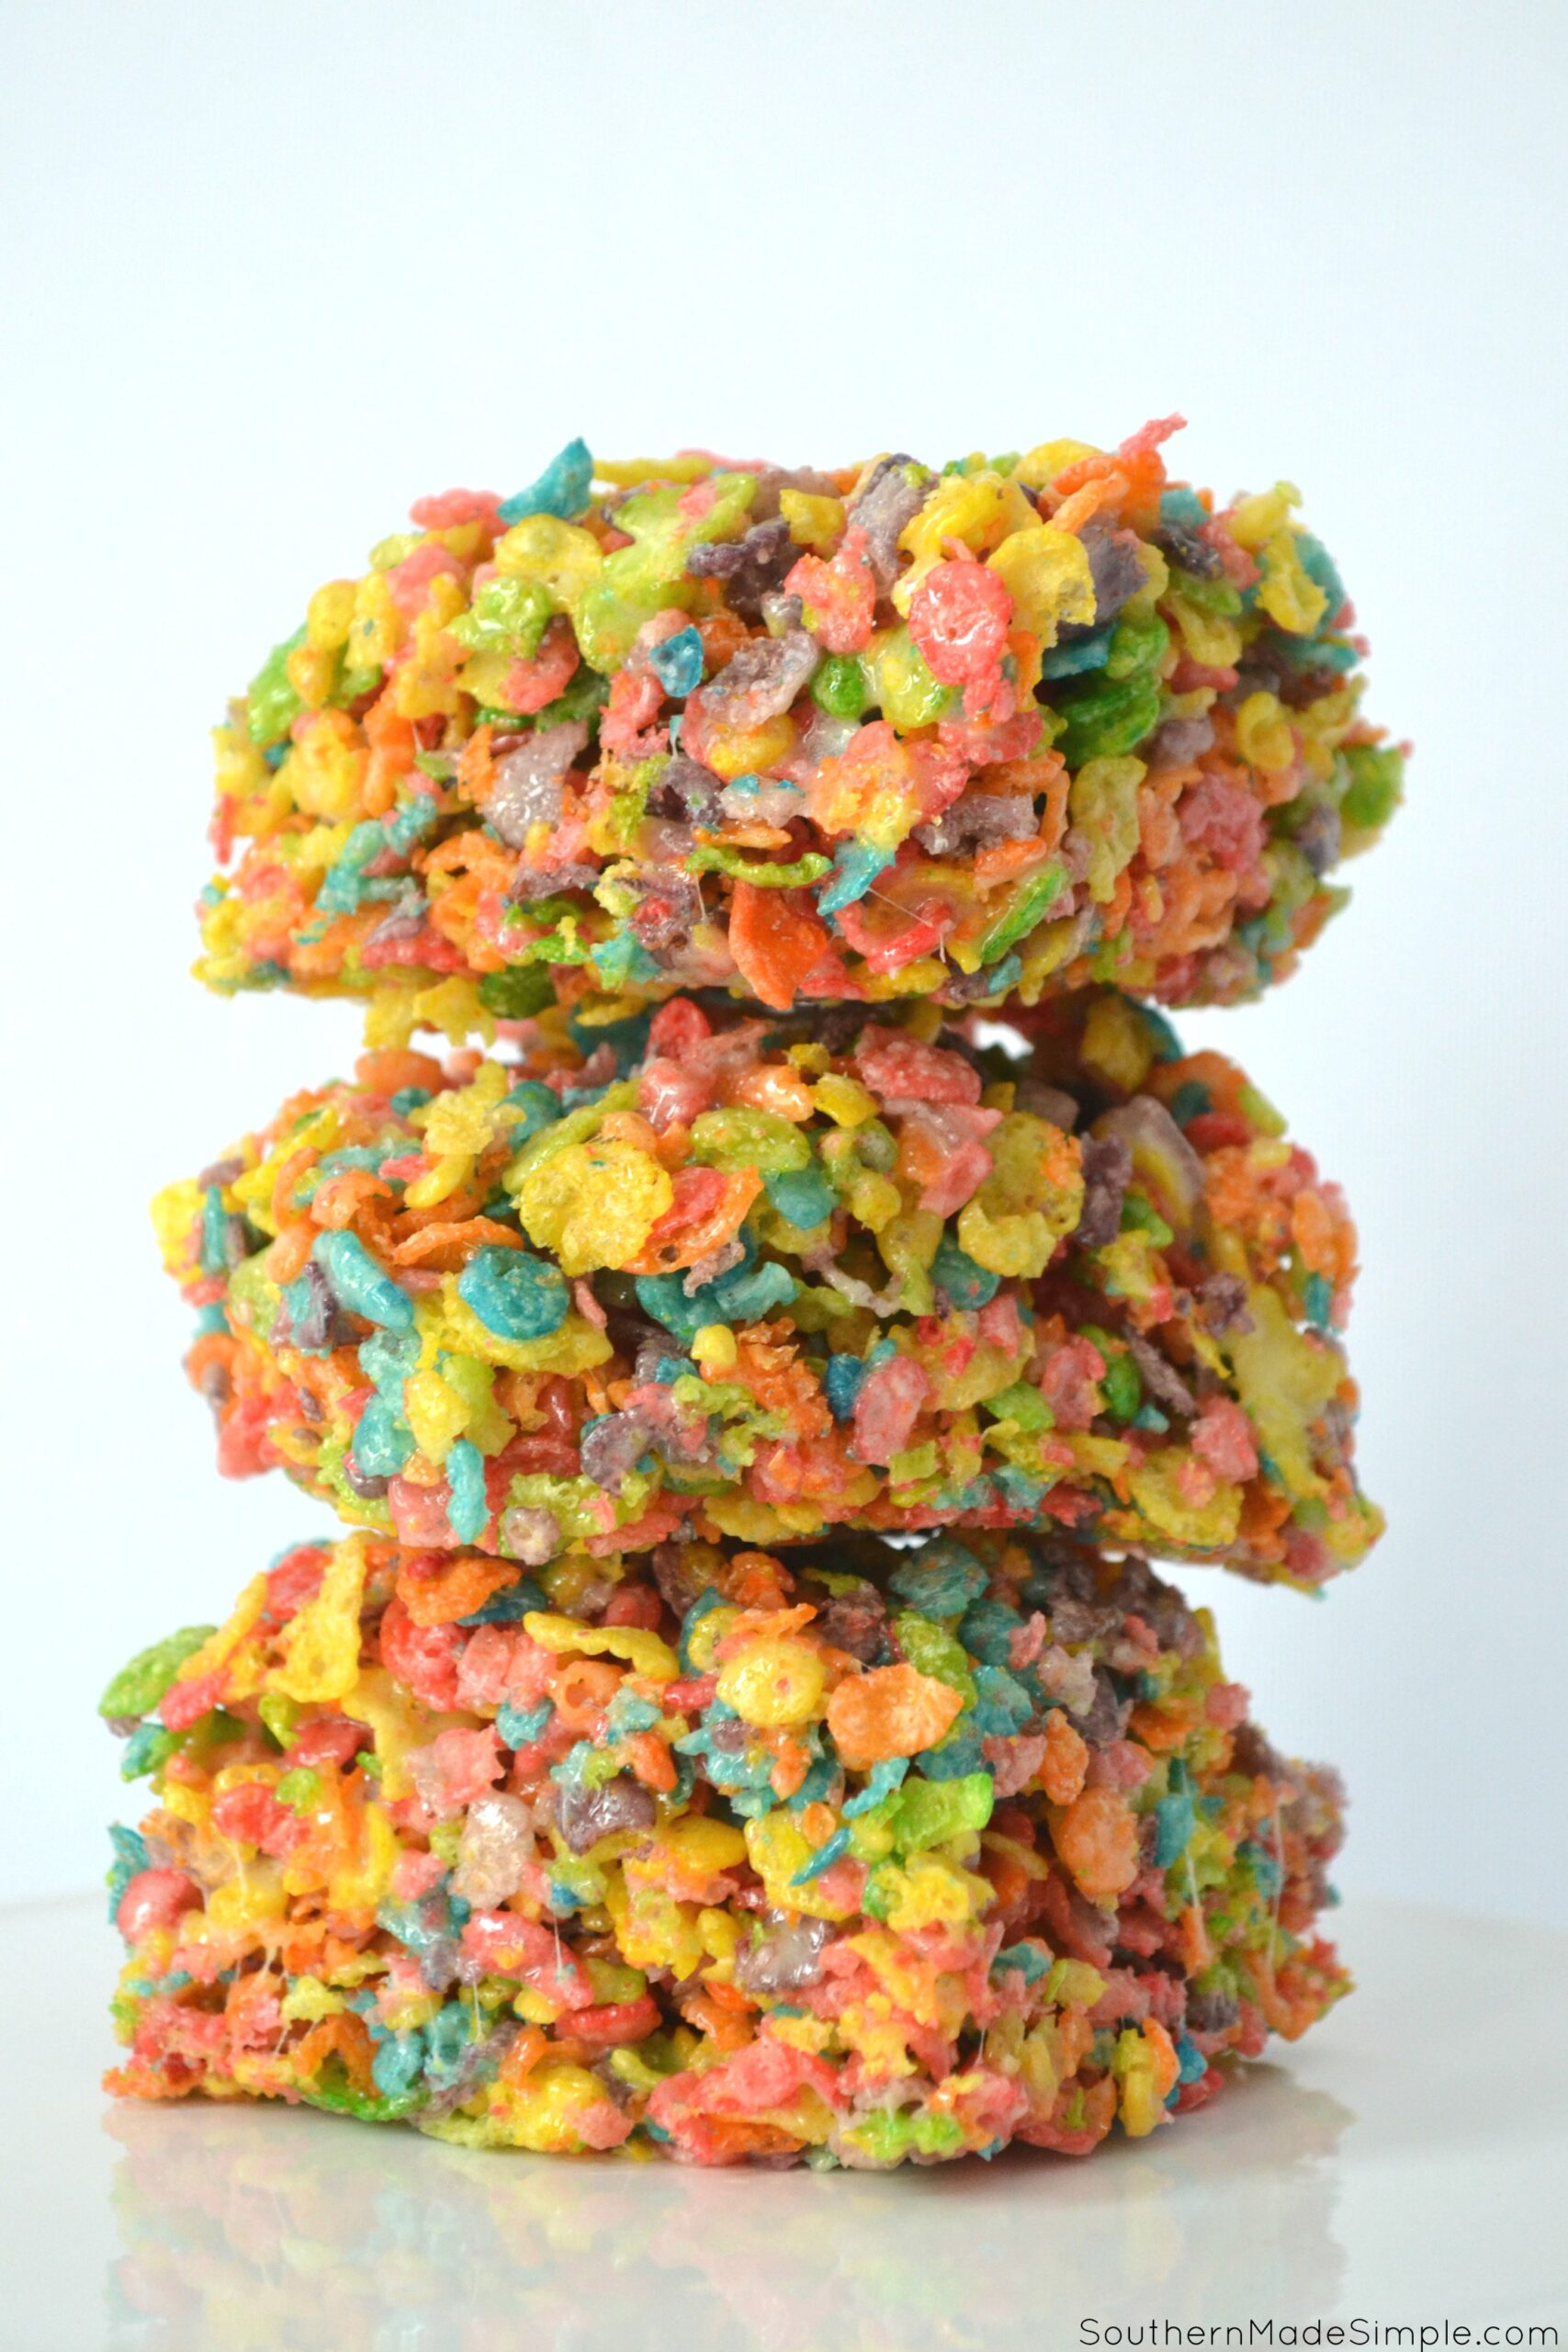 Fruity Pebble Marshmallow Treats